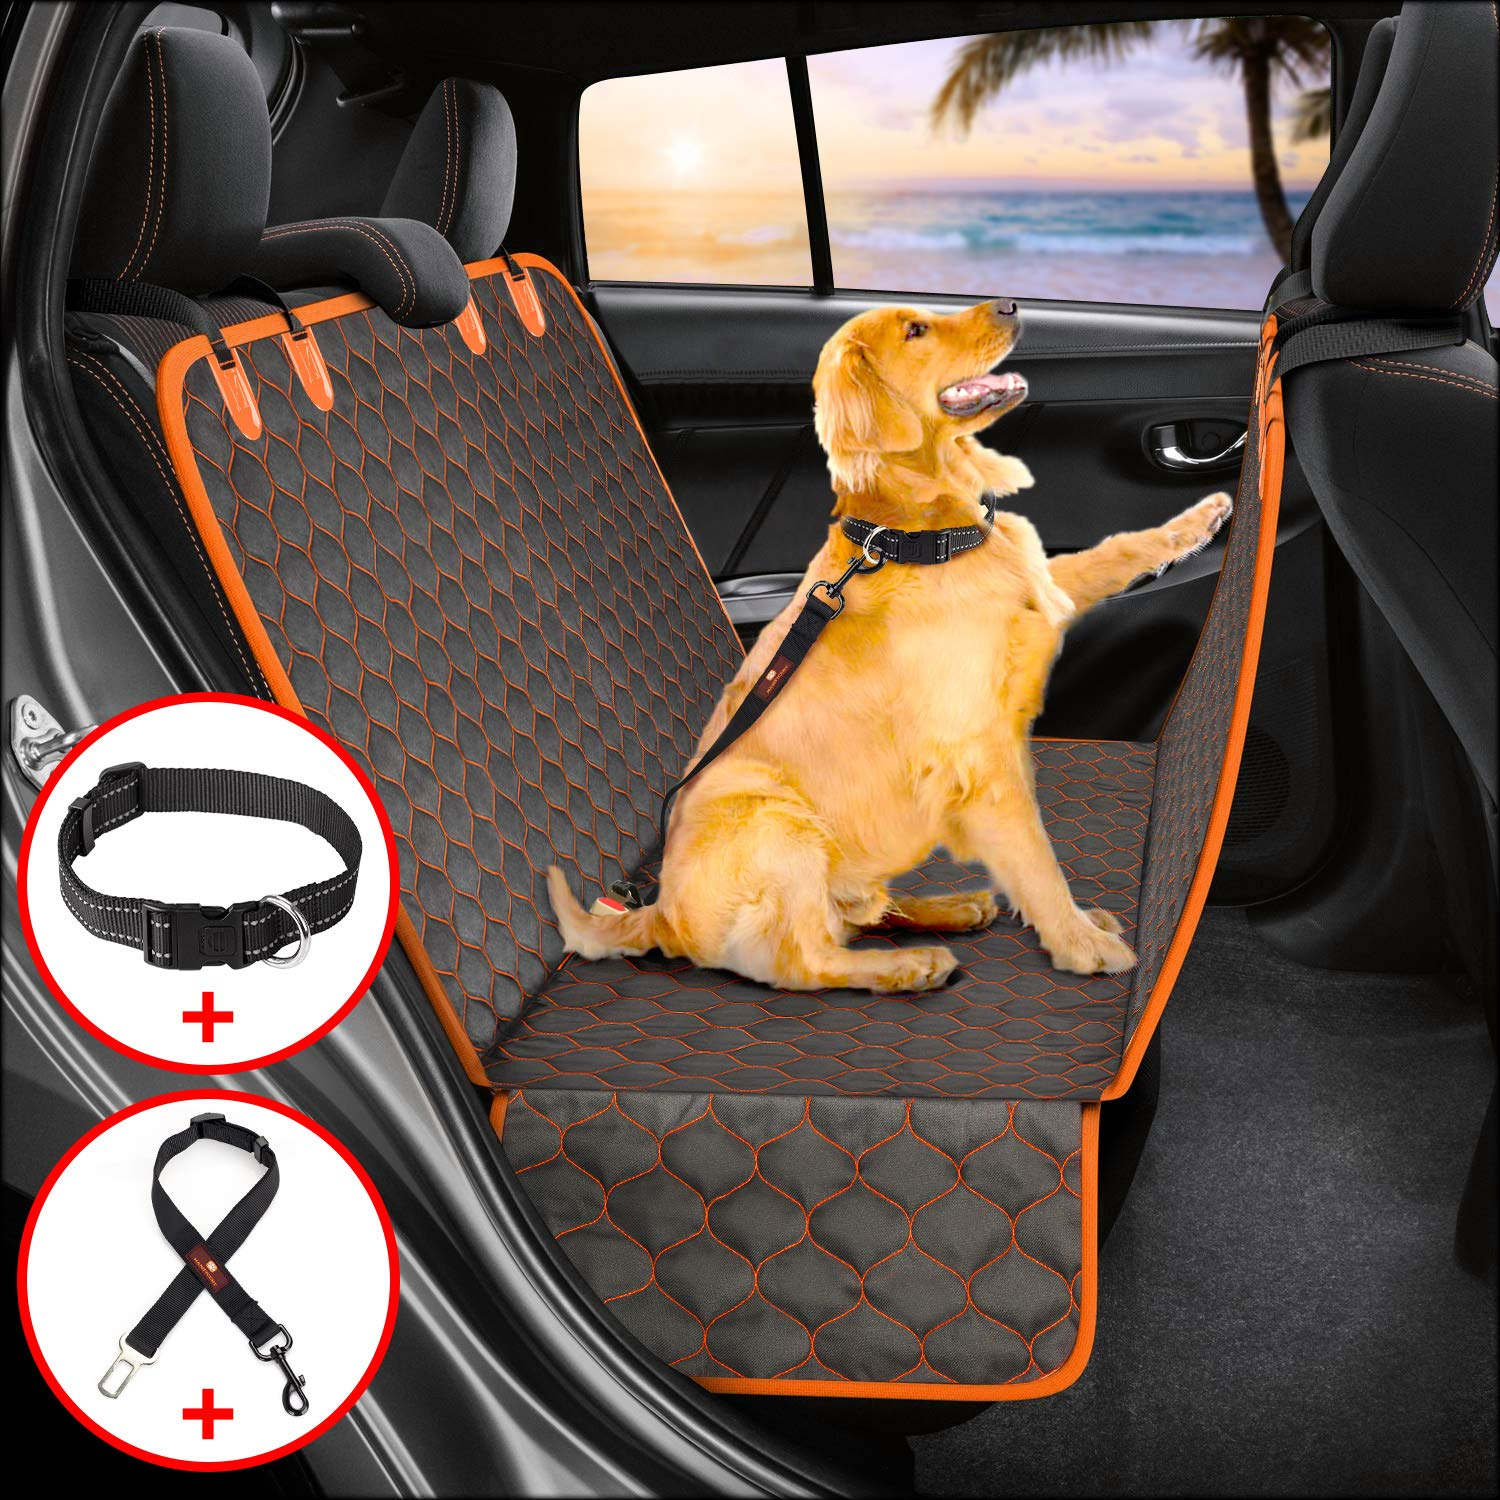 Manificent Dog Car Seat Covers, Nonslip Pet Seat Cover, Hammock 600D Heavy Duty Waterproof Scratch-Proof Thicken Dog Seat Covers Fits Most Cars, Trucks, SUVs (Seat Belt& Dog Collar Included) by Manificent